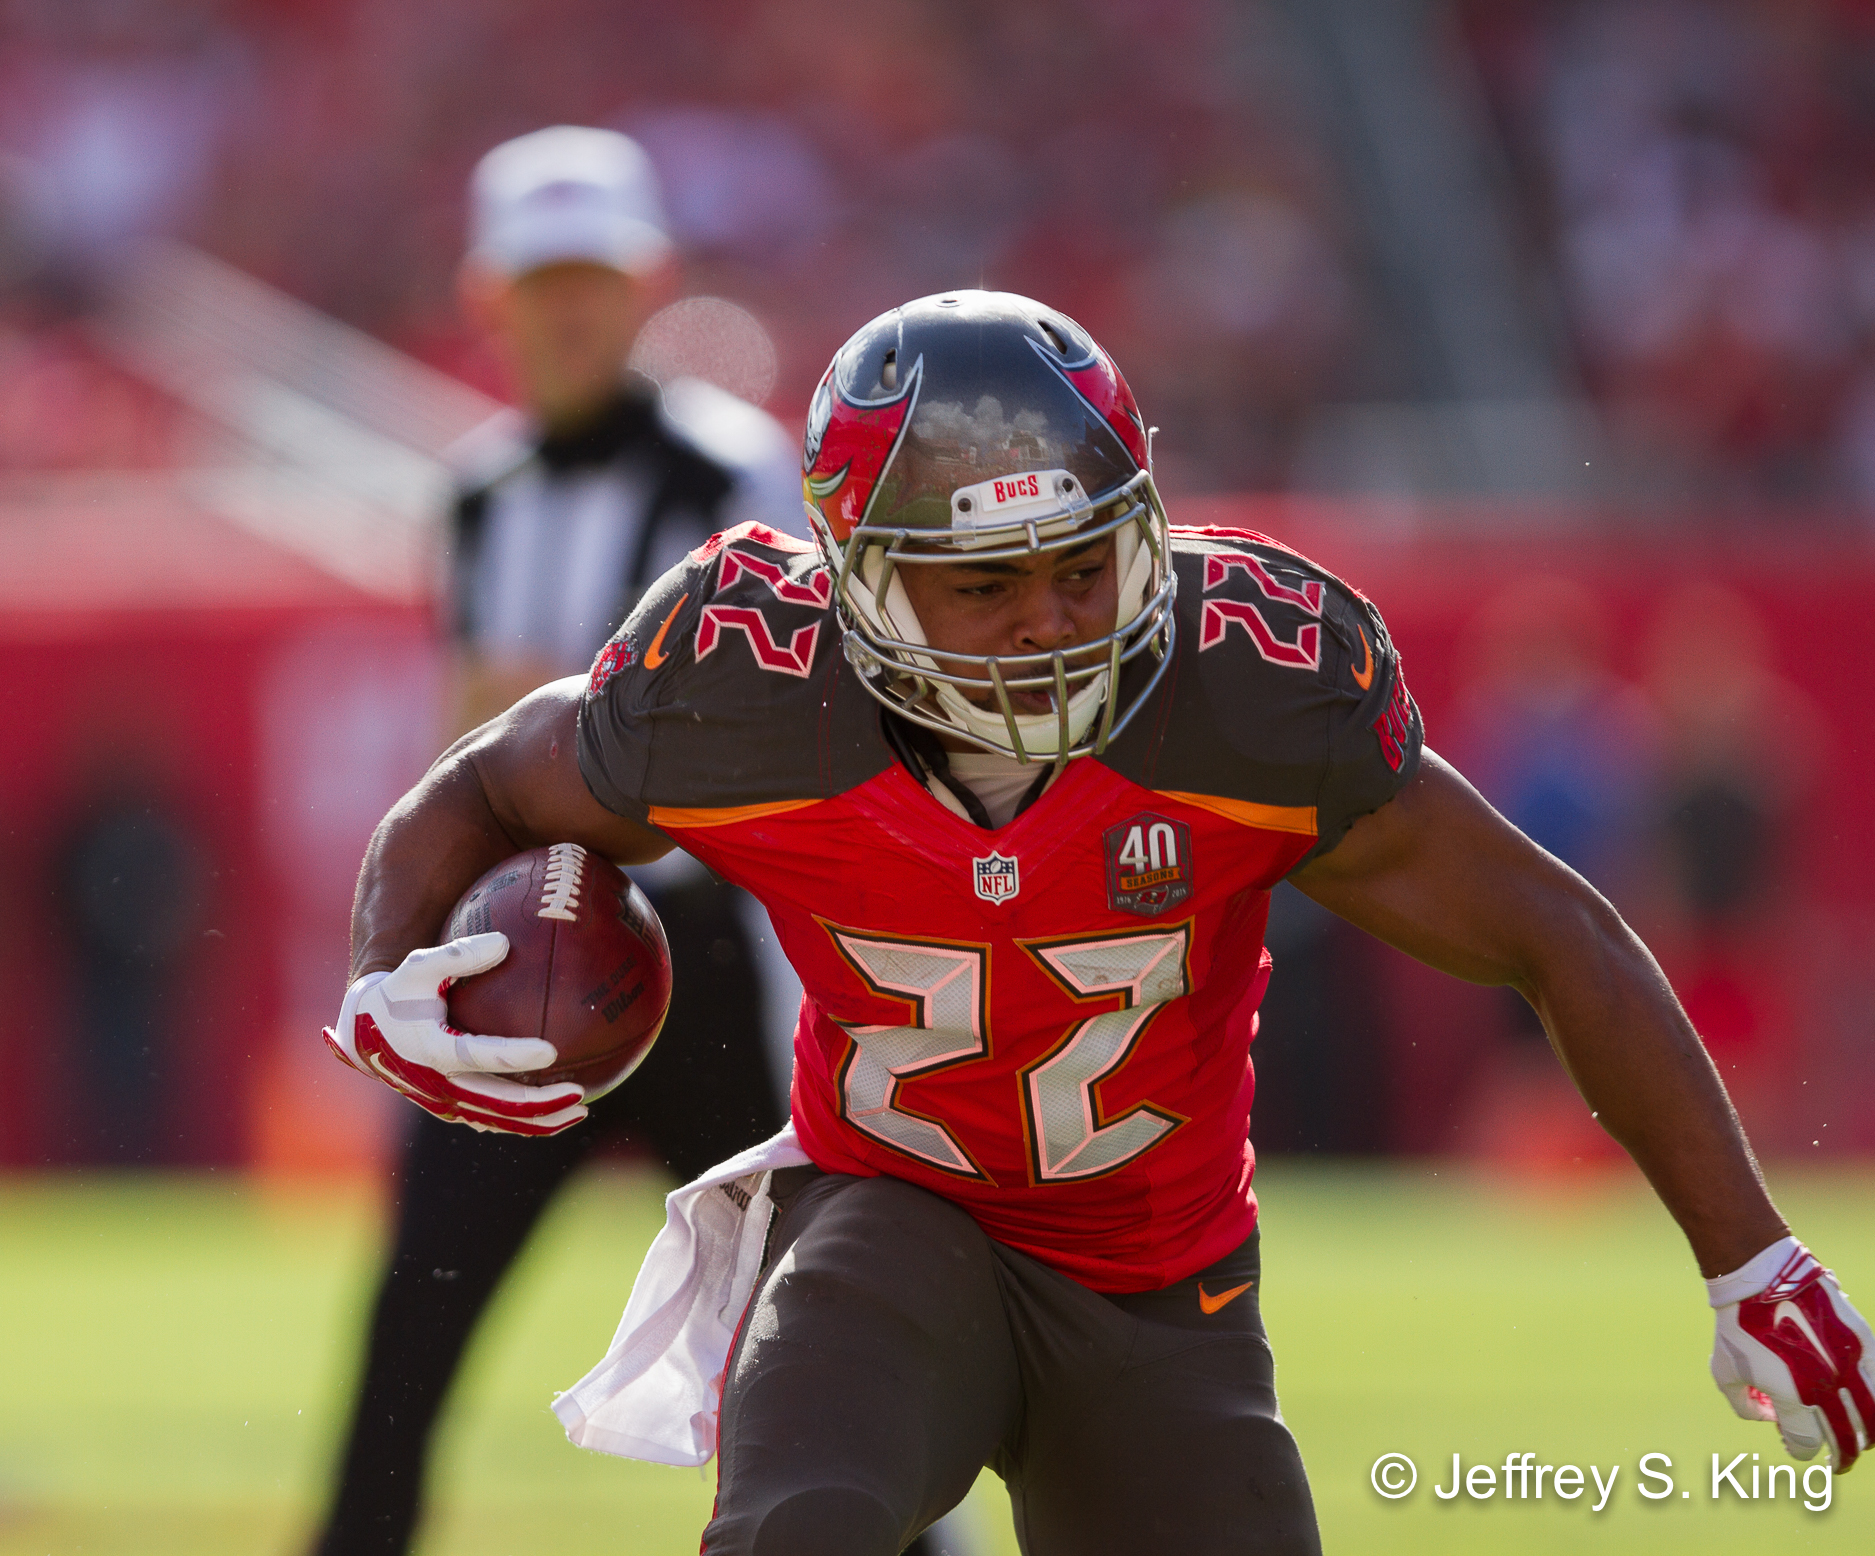 The Bucs paid the price to keep Doug Martin in their huddle.